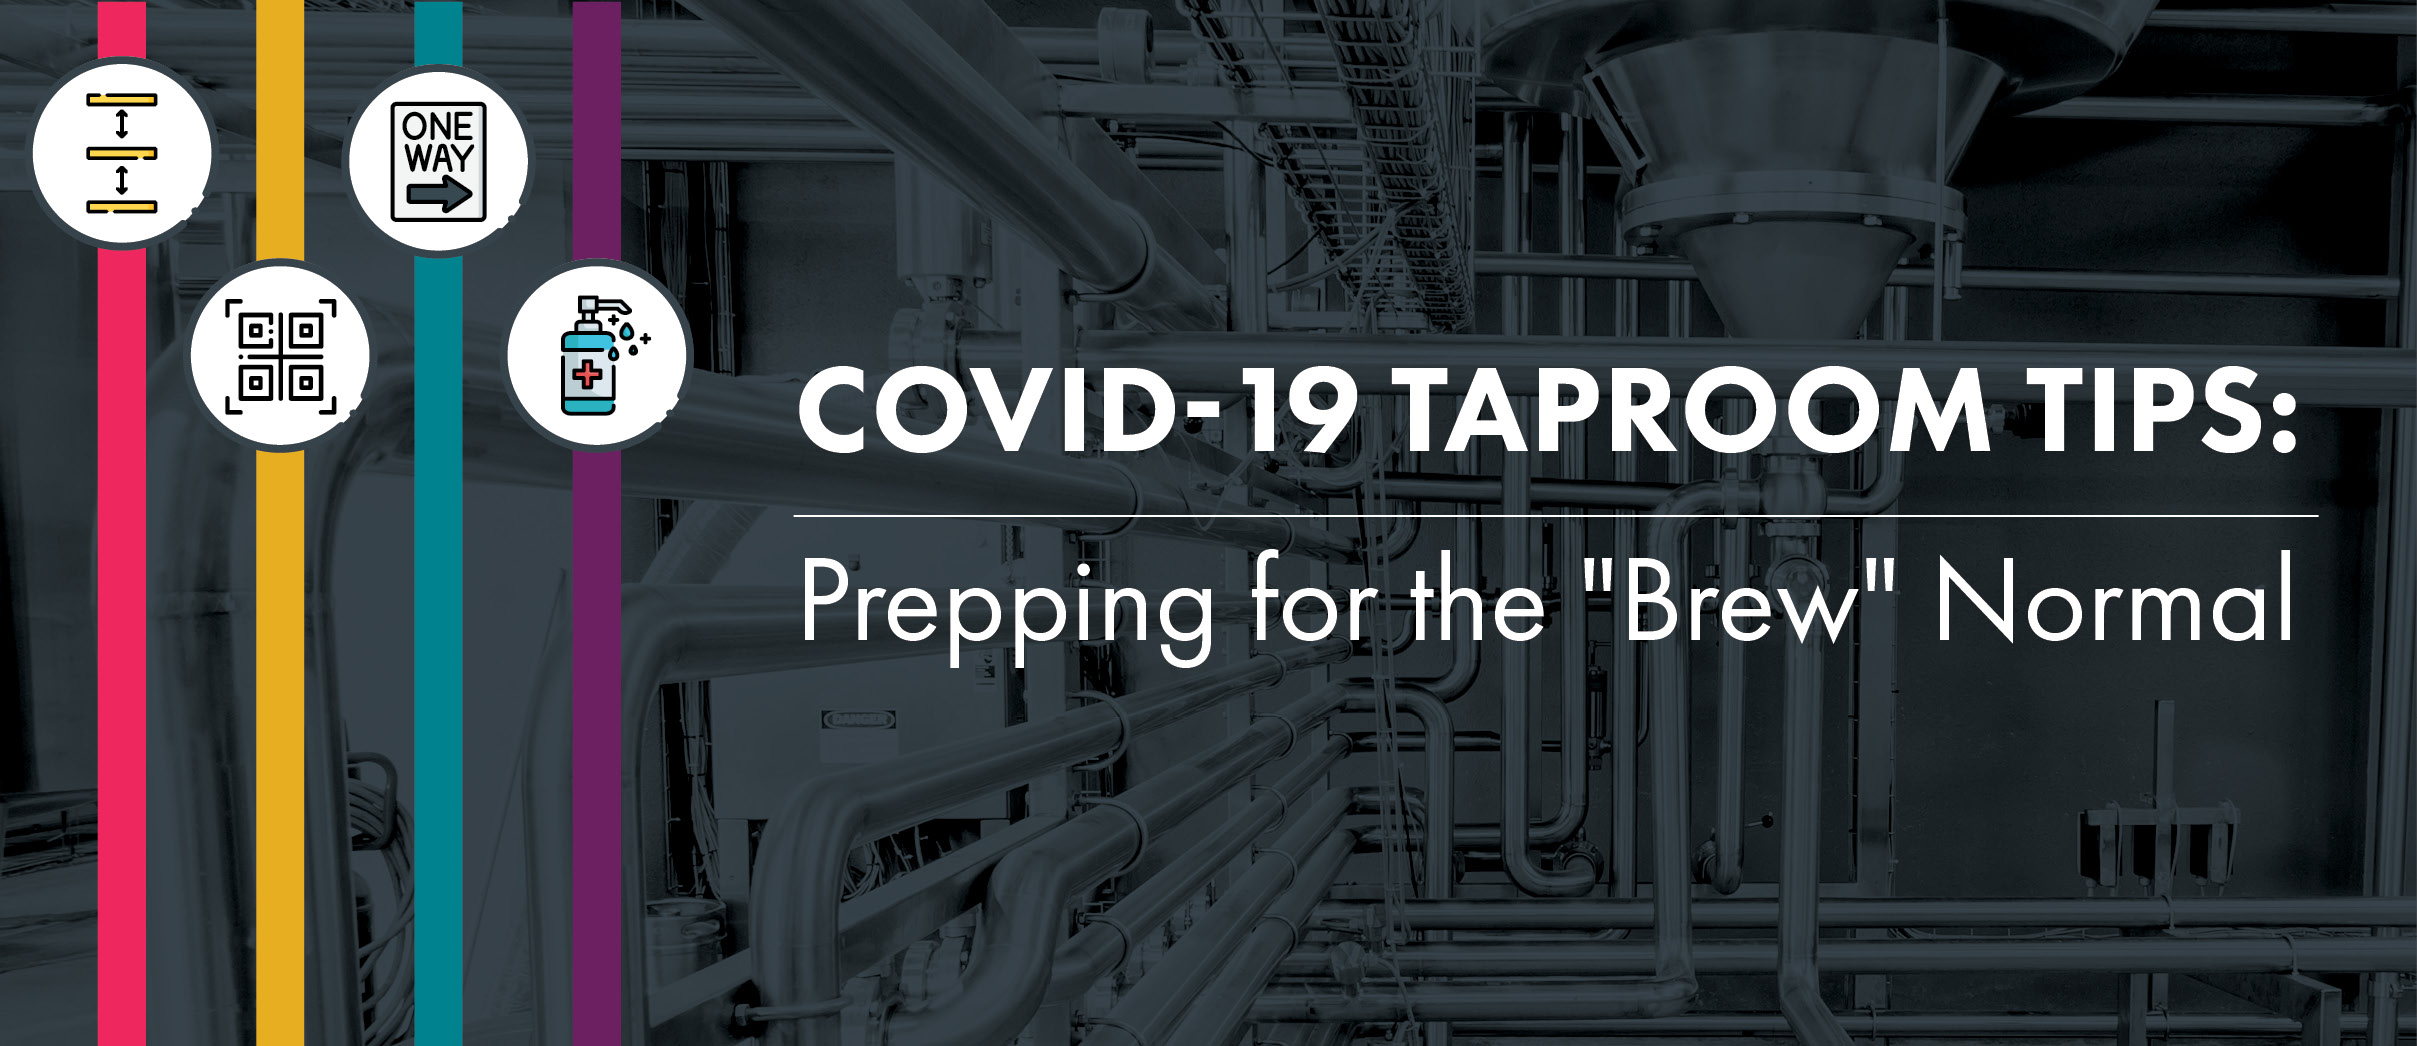 "COVID-19 Taproom Tips: Prepping Your Taproom for the ""Brew"" Normal"